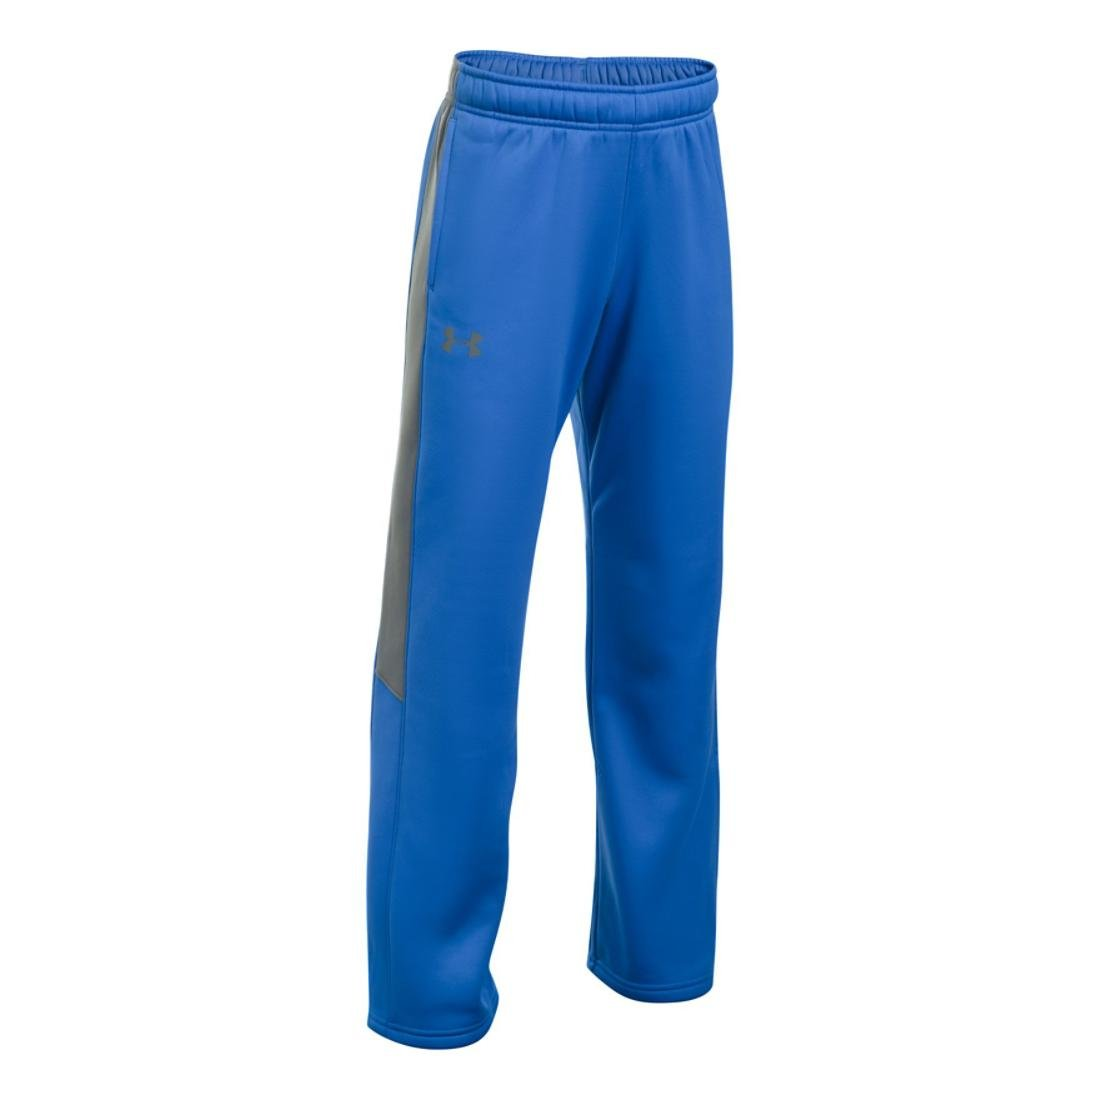 Under Armour Boys PS Armour Fleece Pant, Blue/Graphite, YMD by Under Armour (Image #1)